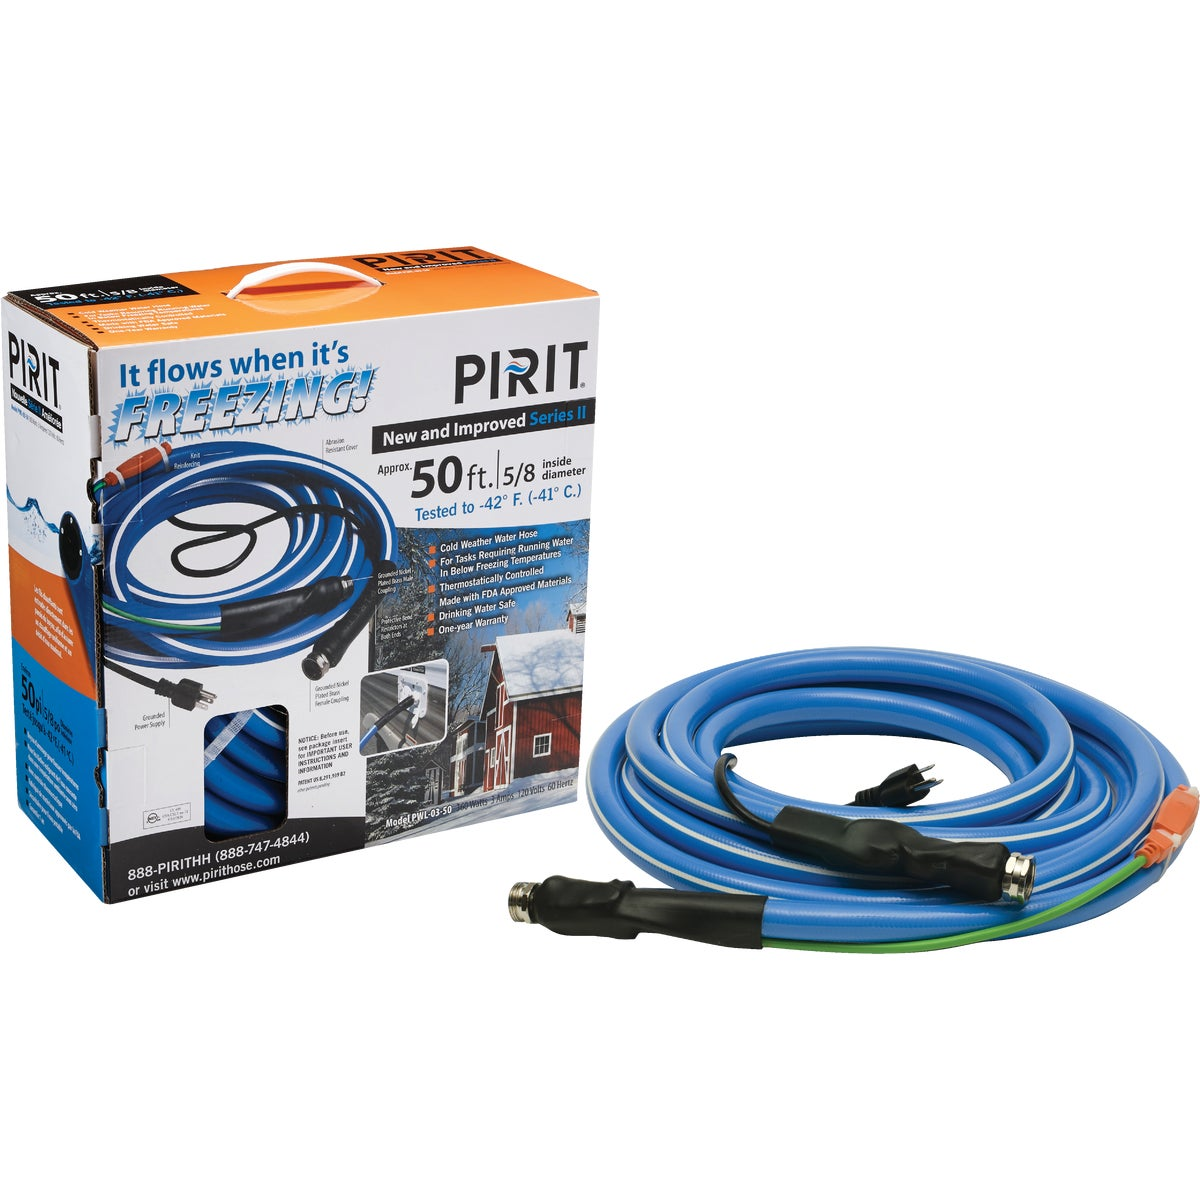 50' HEATED WATER HOSE